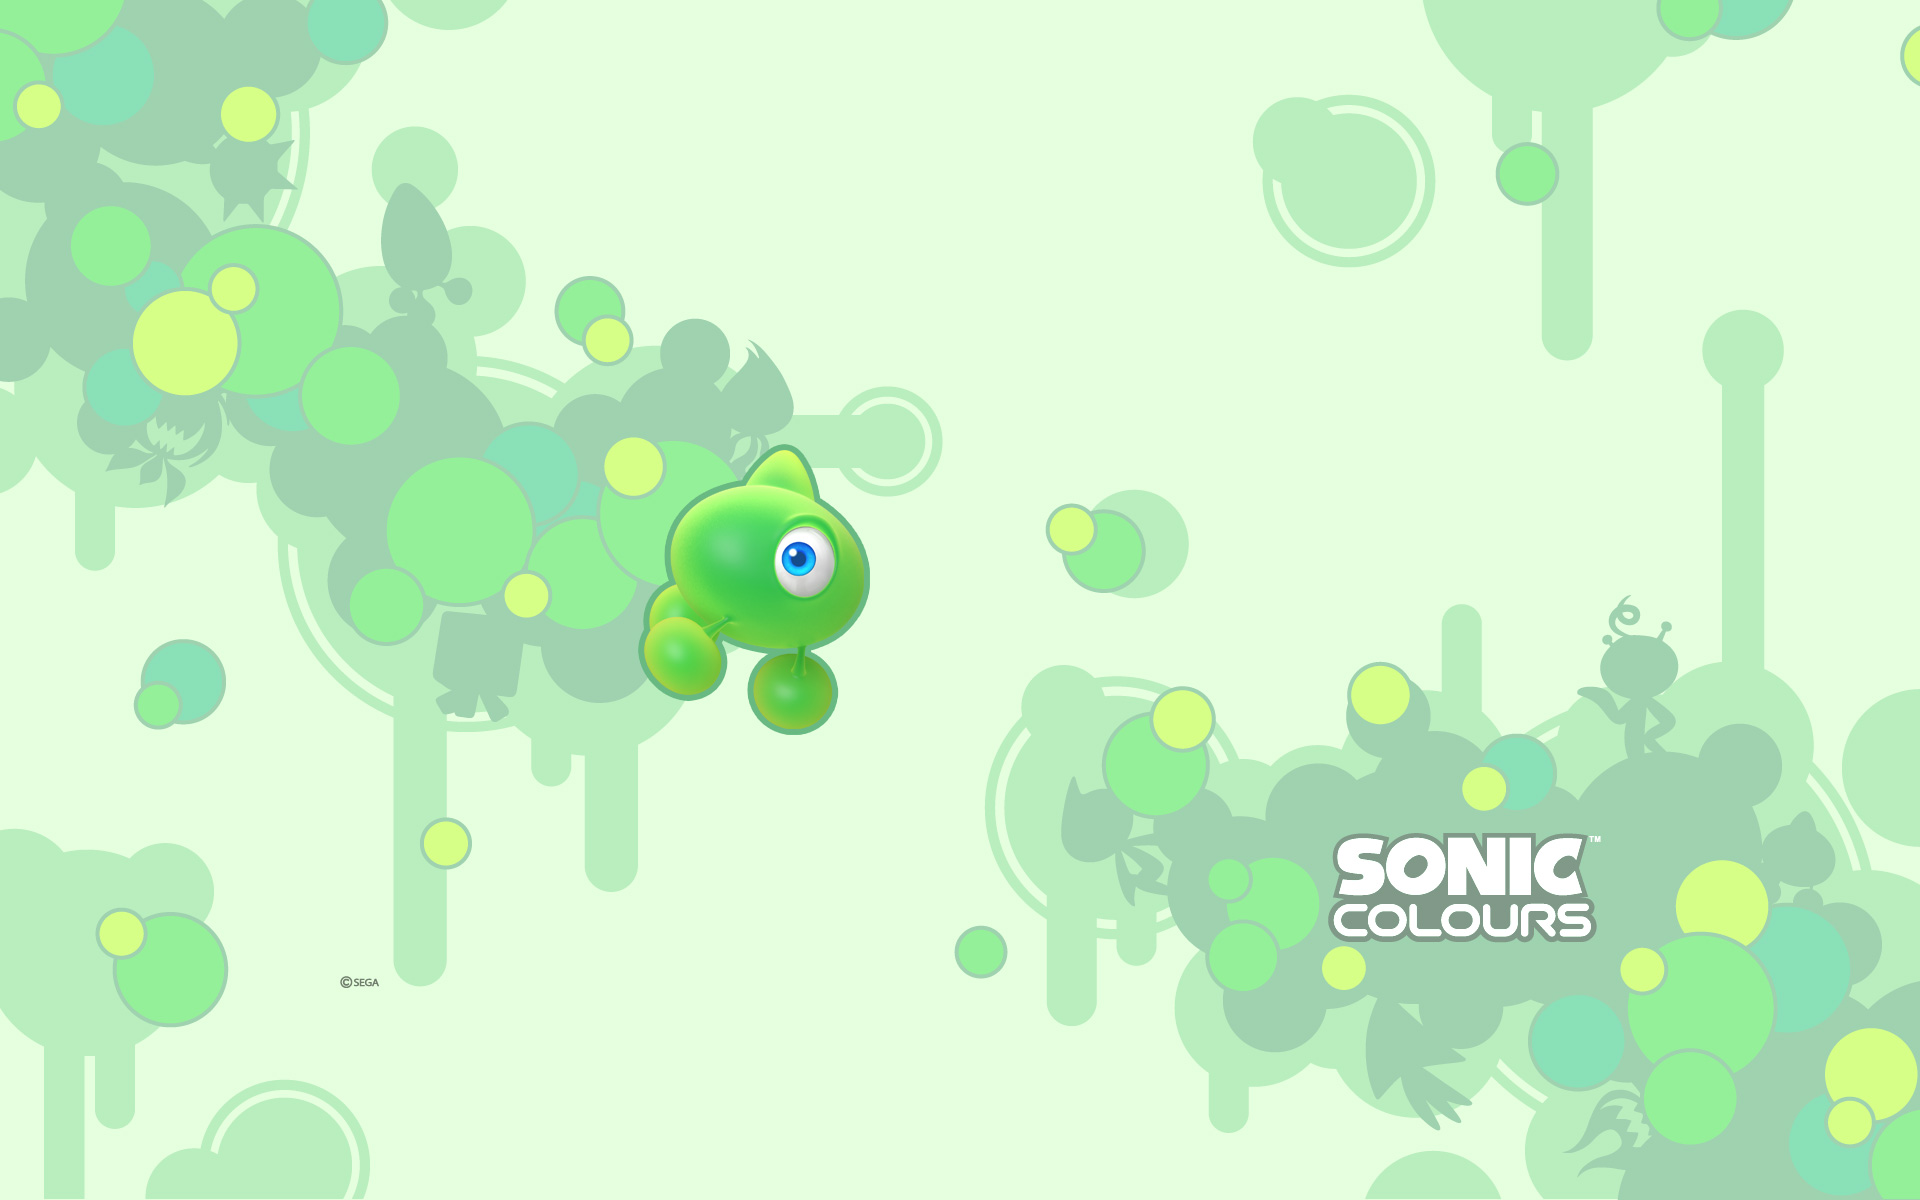 Sonic Colors Hd Wallpaper Background Image 1920x1200 Id616682